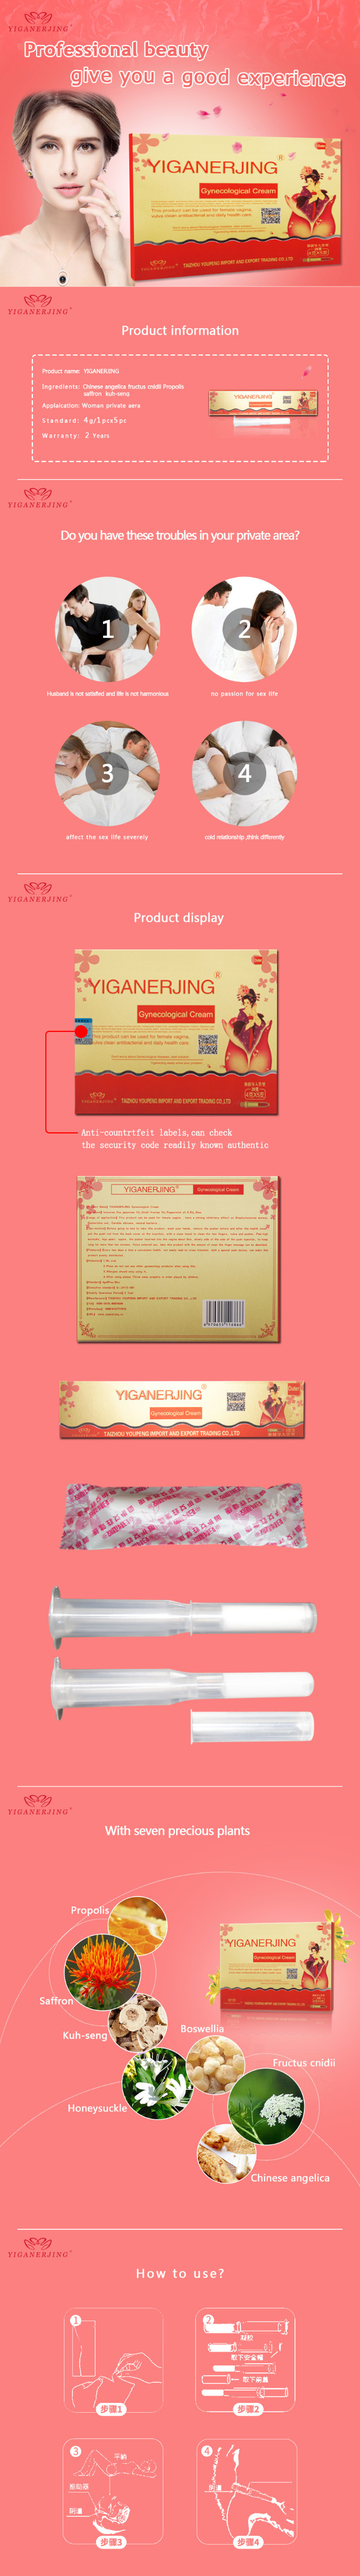 Bath & Shower 5pcs=1box Ytiganerjing Shrinking Gynecology Kill Bacteria Anti-inflammation Care Gel Lubricant High Standard In Quality And Hygiene Beauty & Health